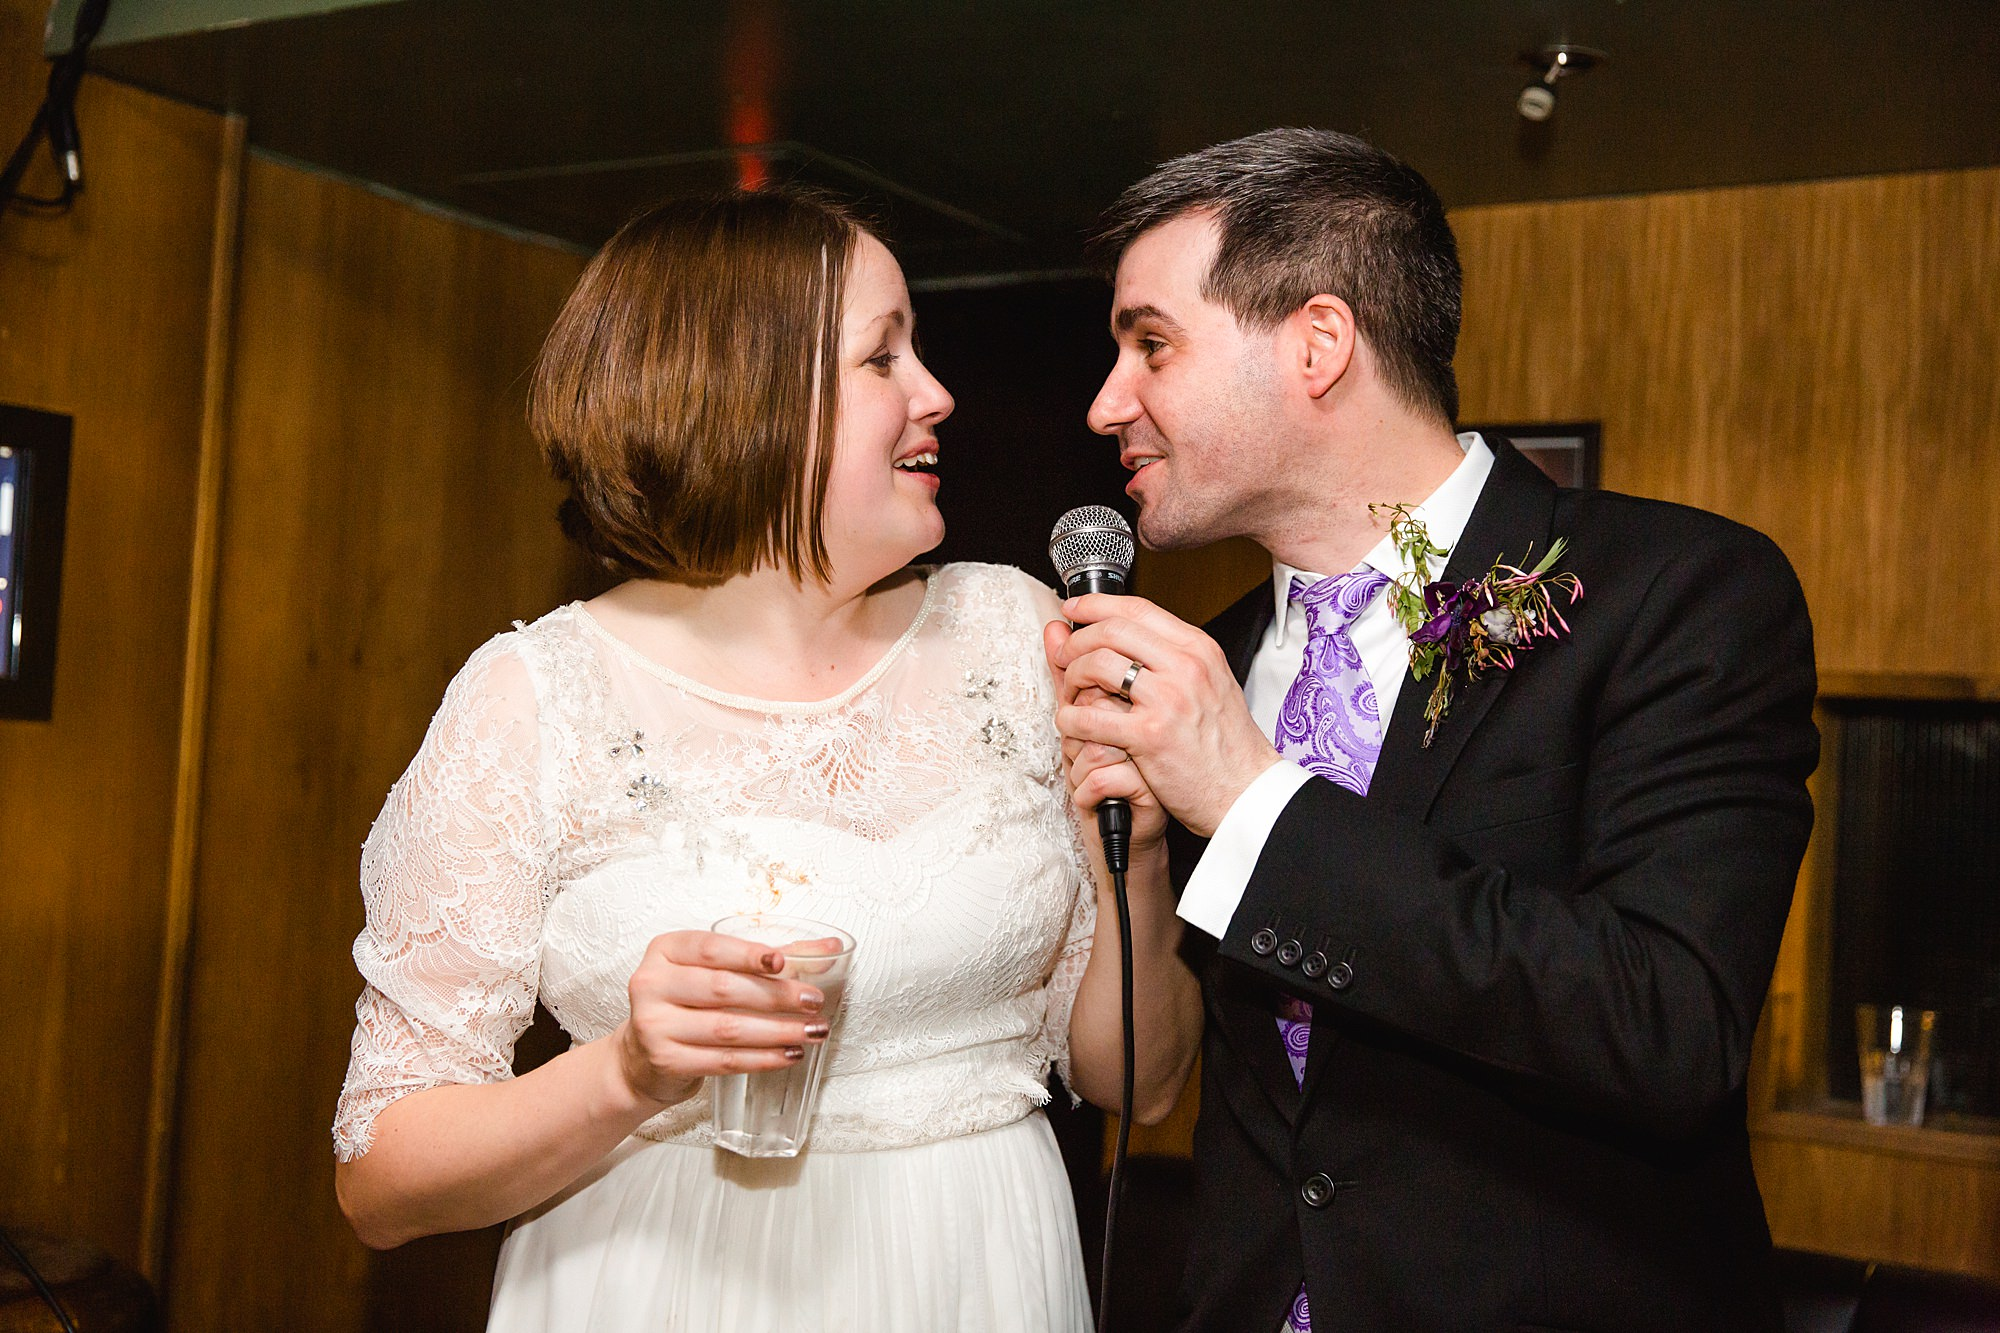 fun london wedding bowling groom and bride sing together